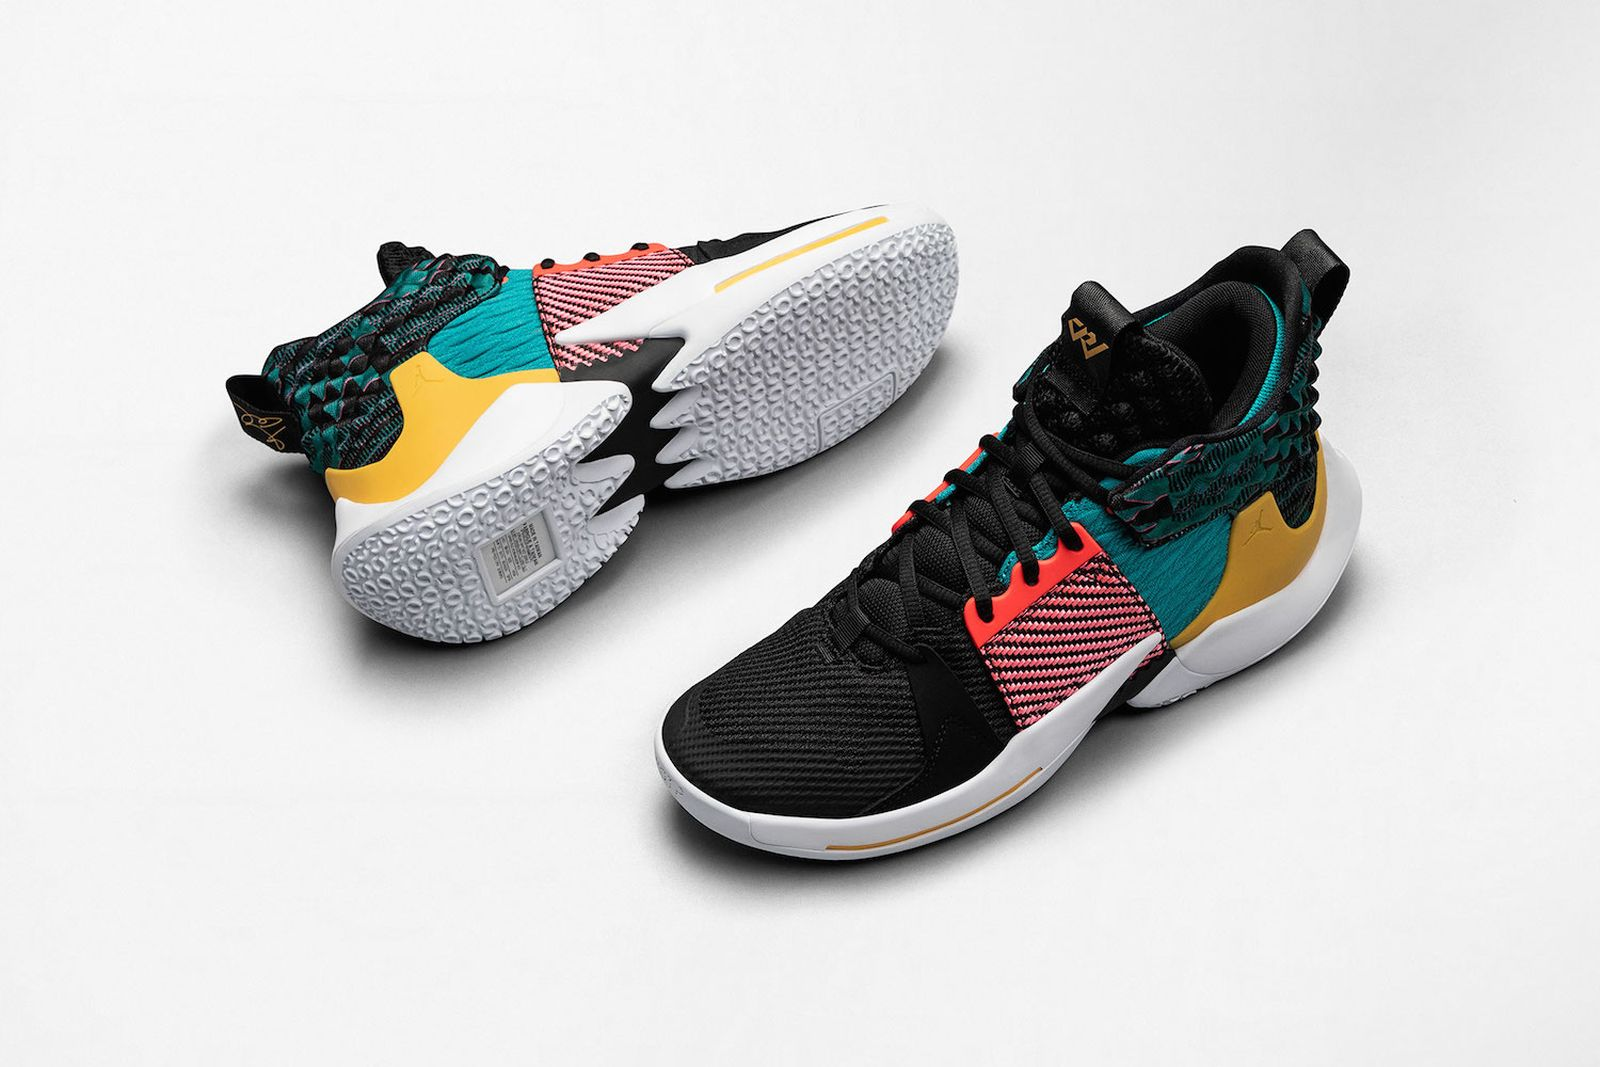 nike bhm 2019 collection release date price info Converse Chuck 70 Jordan Why Not Zer0.2 Nike Air Force 1 Utility